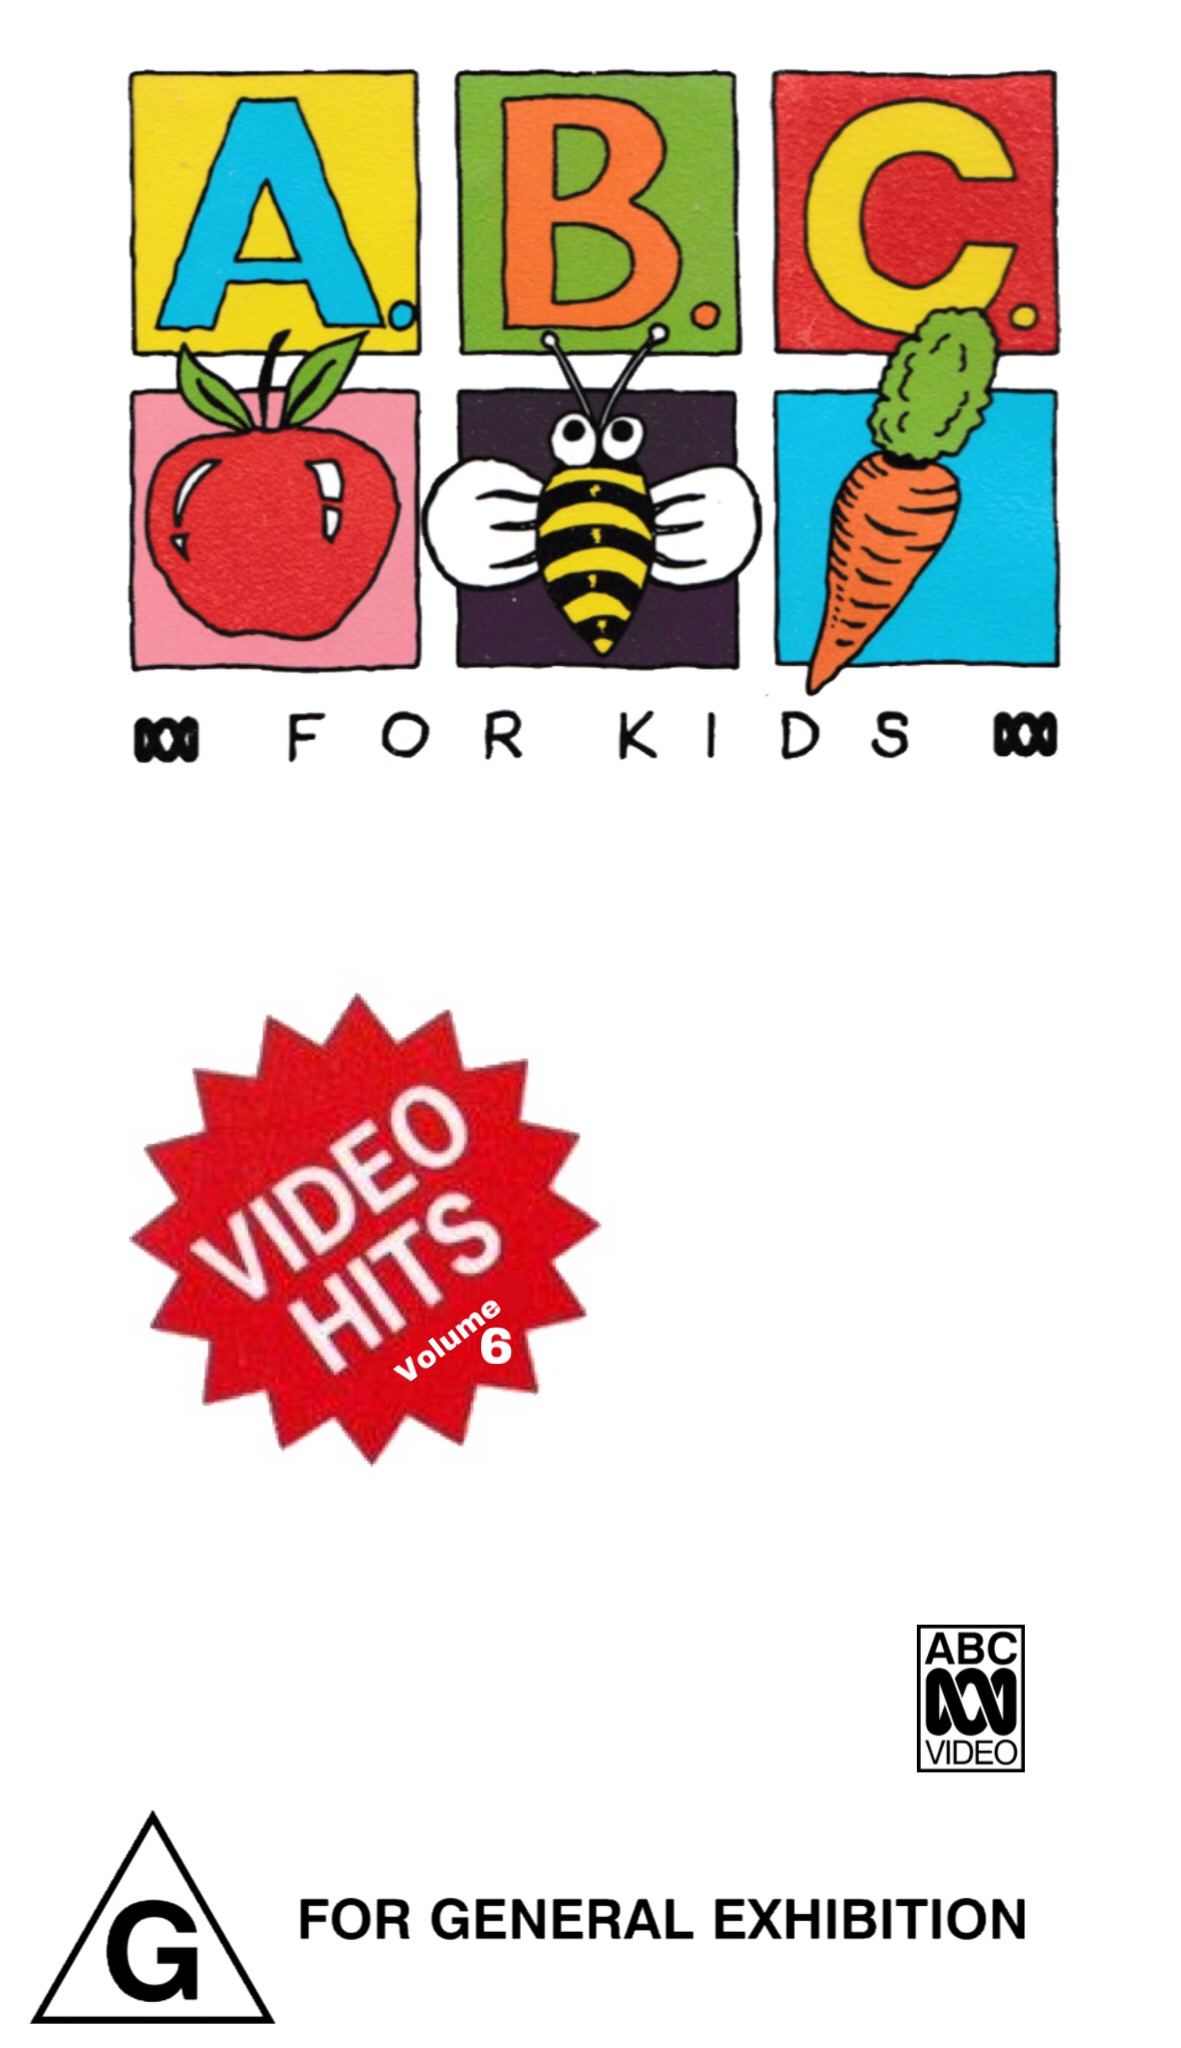 ABC For Kids Fanon: ABC For Kids Video Hits Volume 6